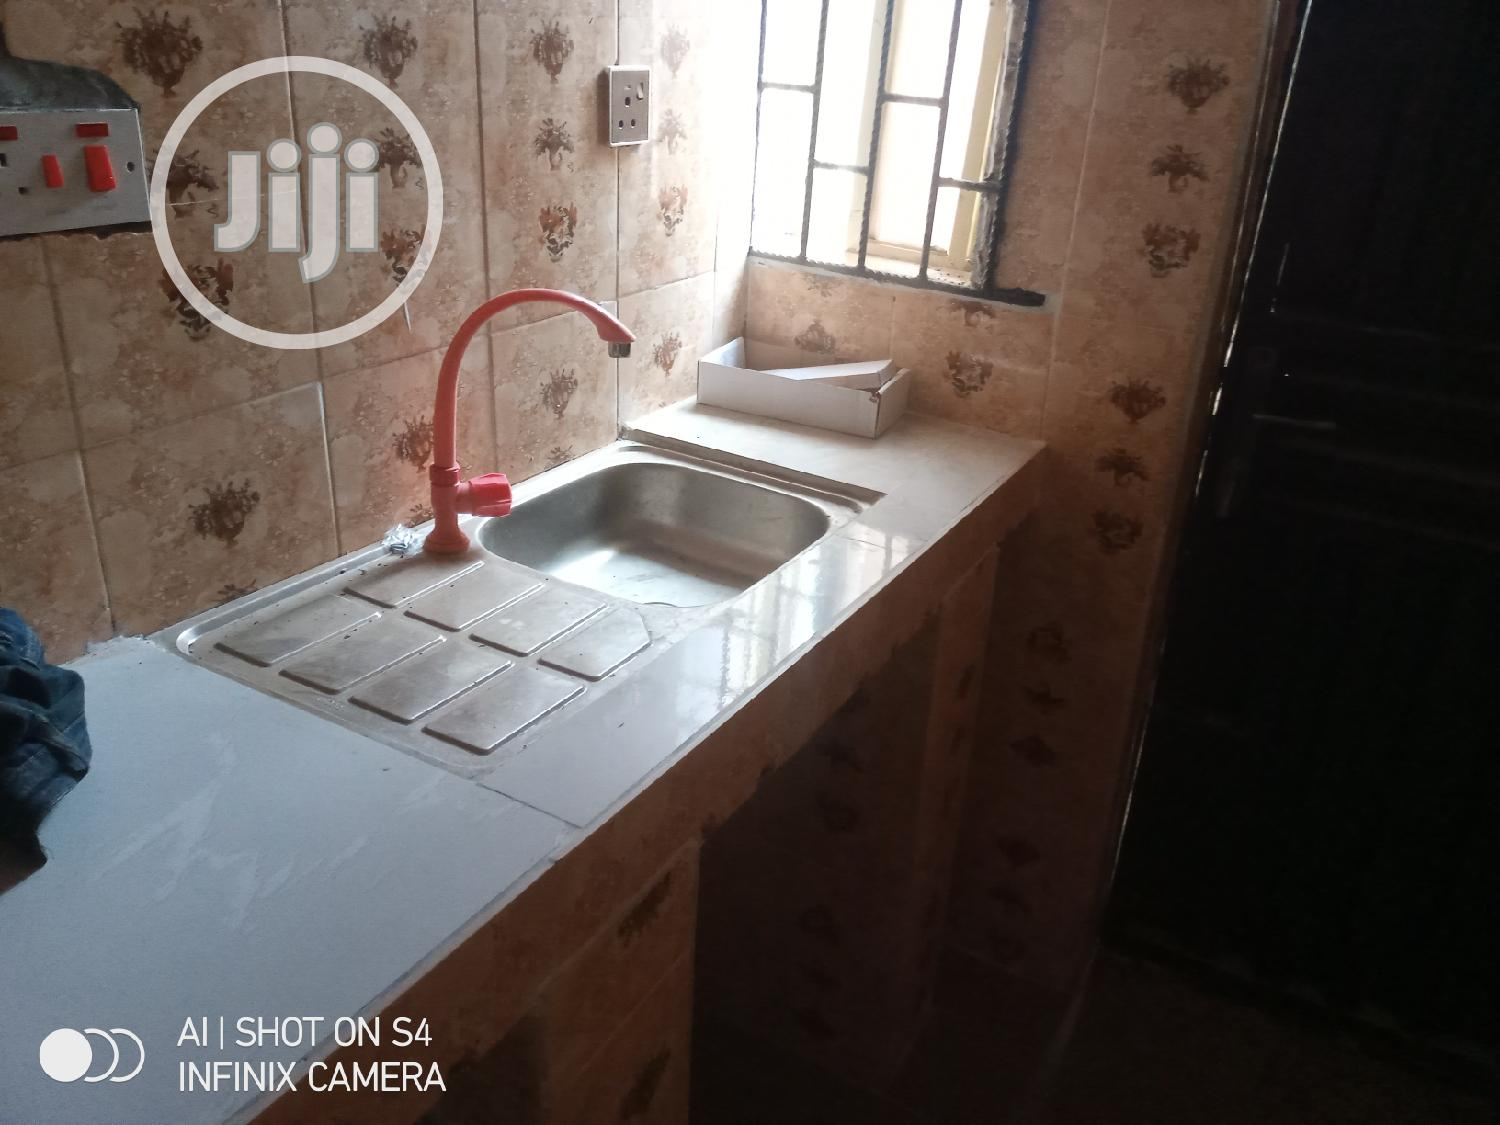 A Standard Room $ Parlour For Rent | Houses & Apartments For Rent for sale in Ipaja, Lagos State, Nigeria